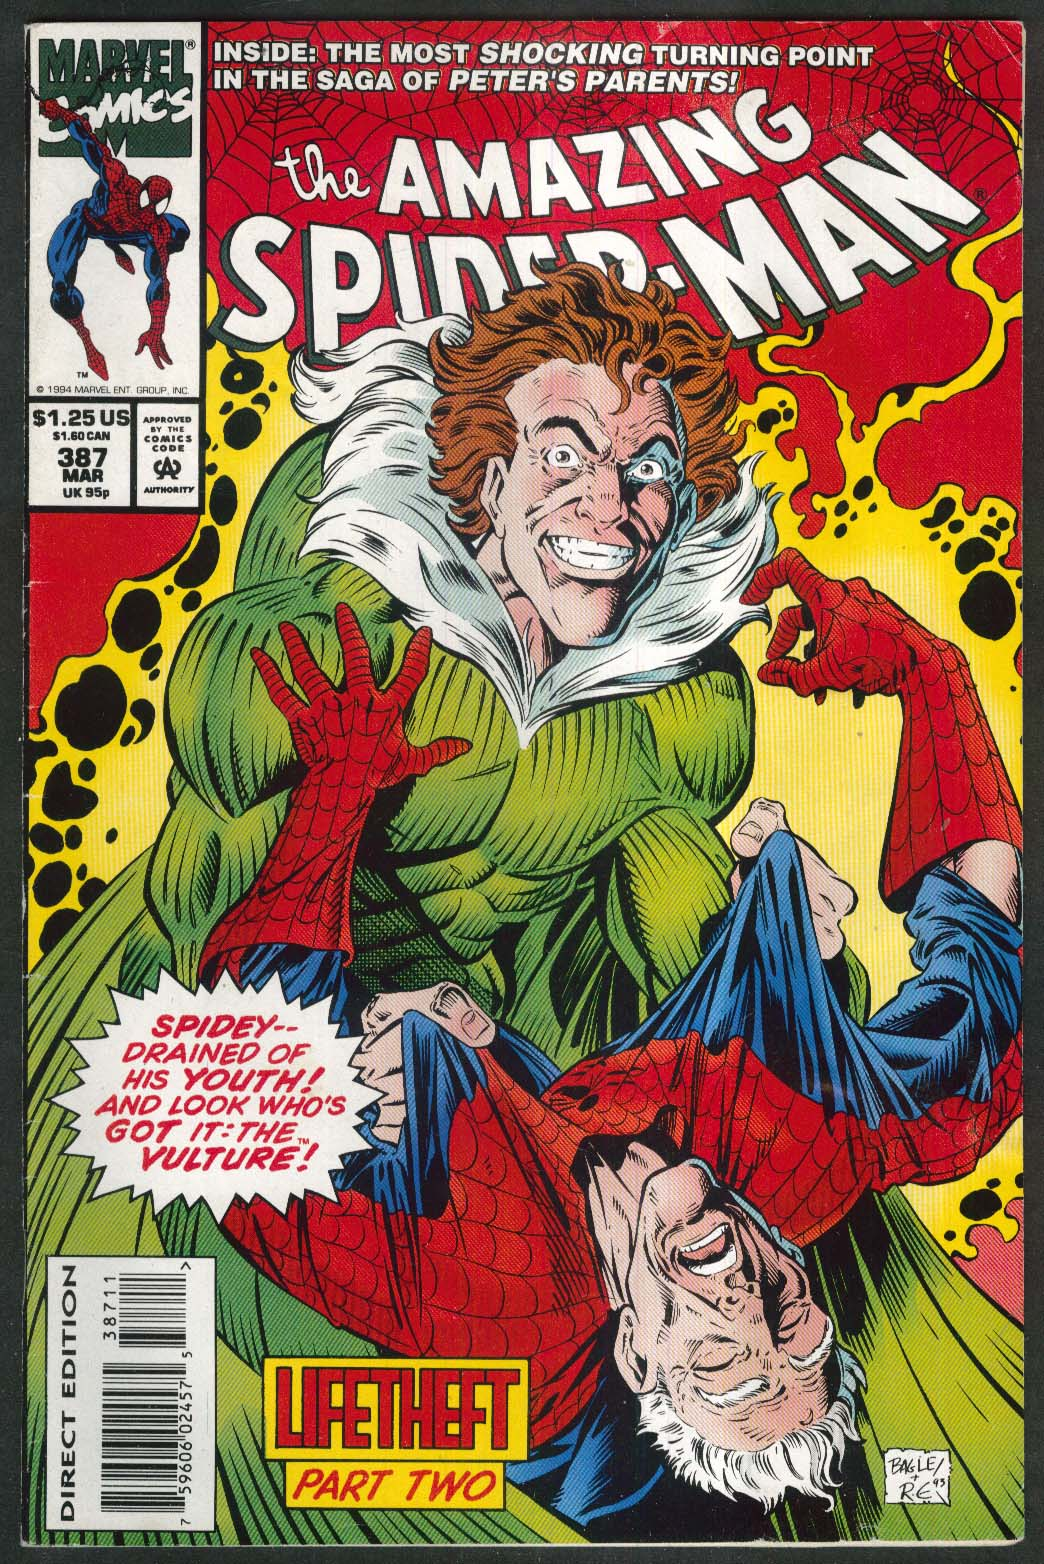 AMAZING SPIDER-MAN #387 Marvel comic book 3 1994